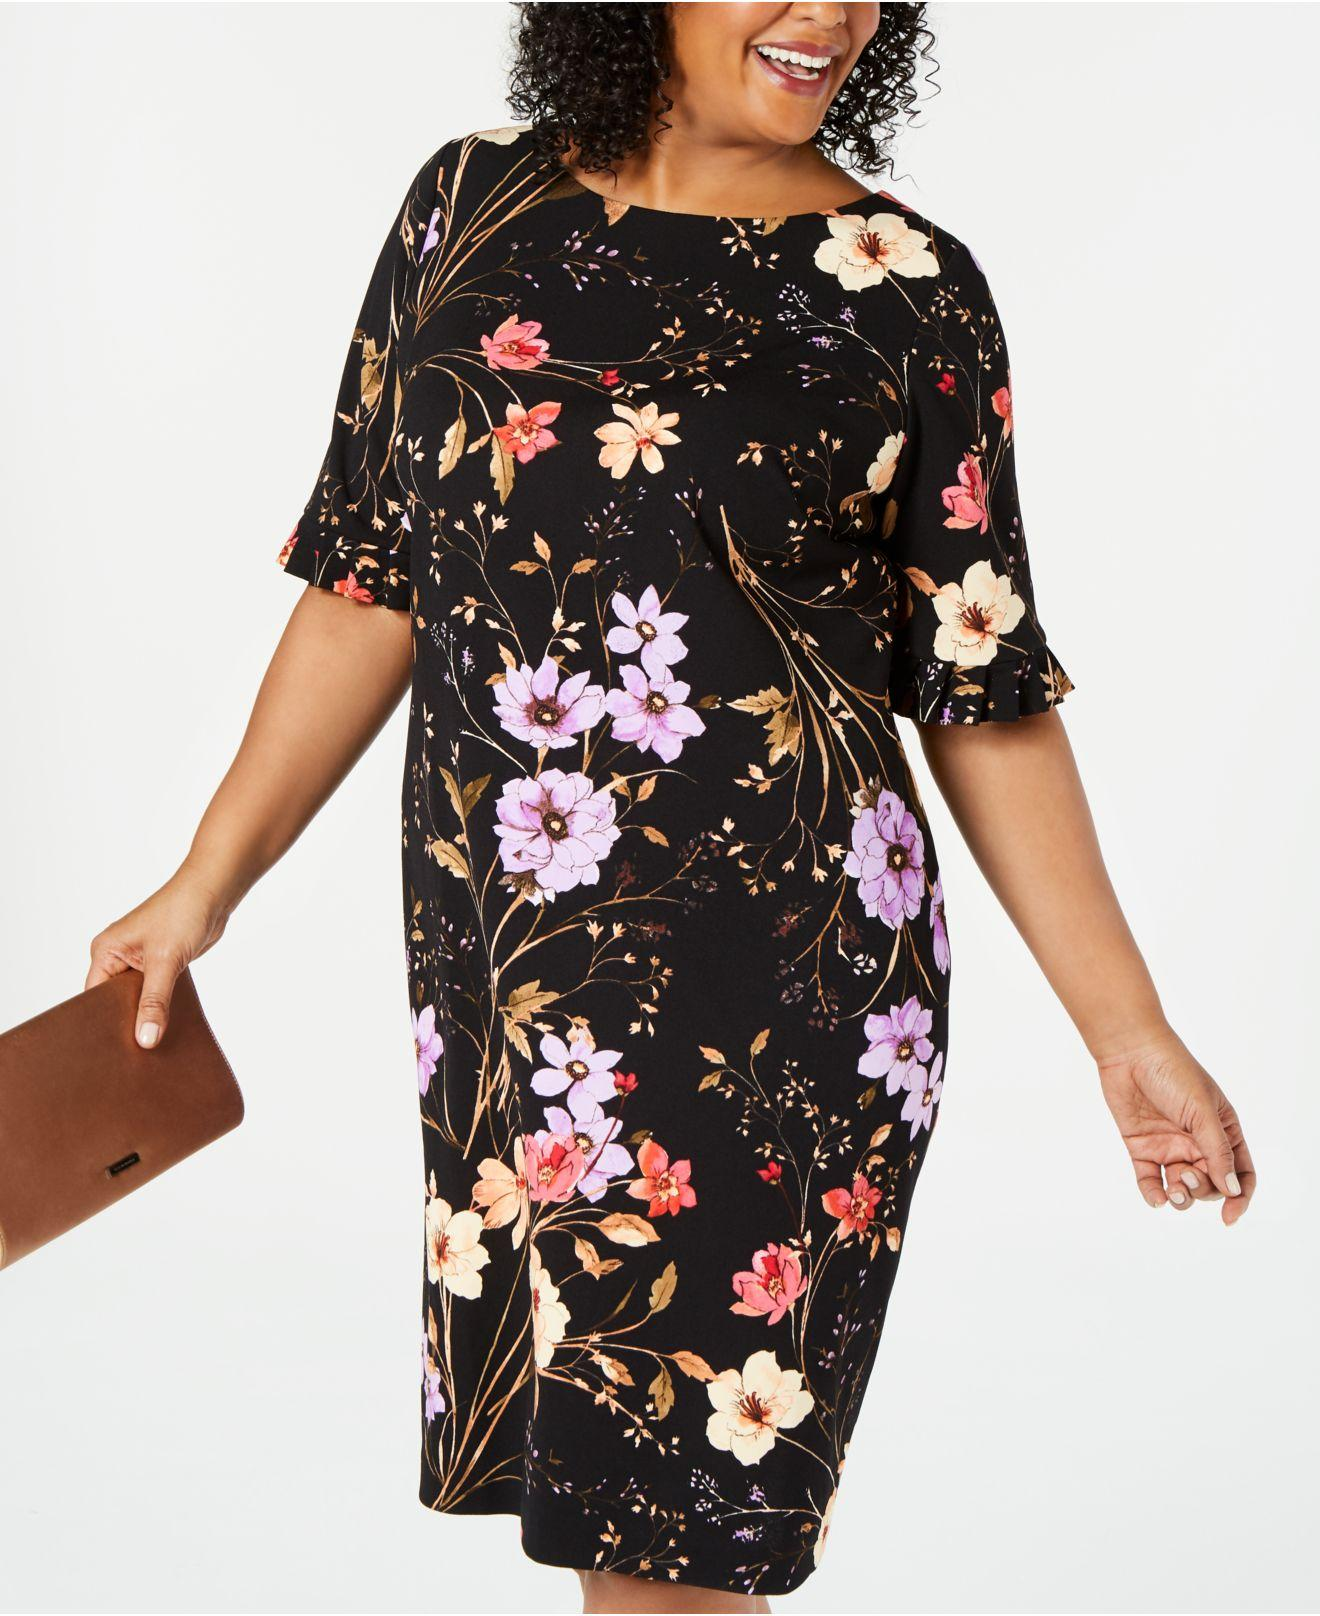 00b2c3b52b3 Calvin Klein - Black Plus Size Floral-print Sheath Dress - Lyst. View  fullscreen